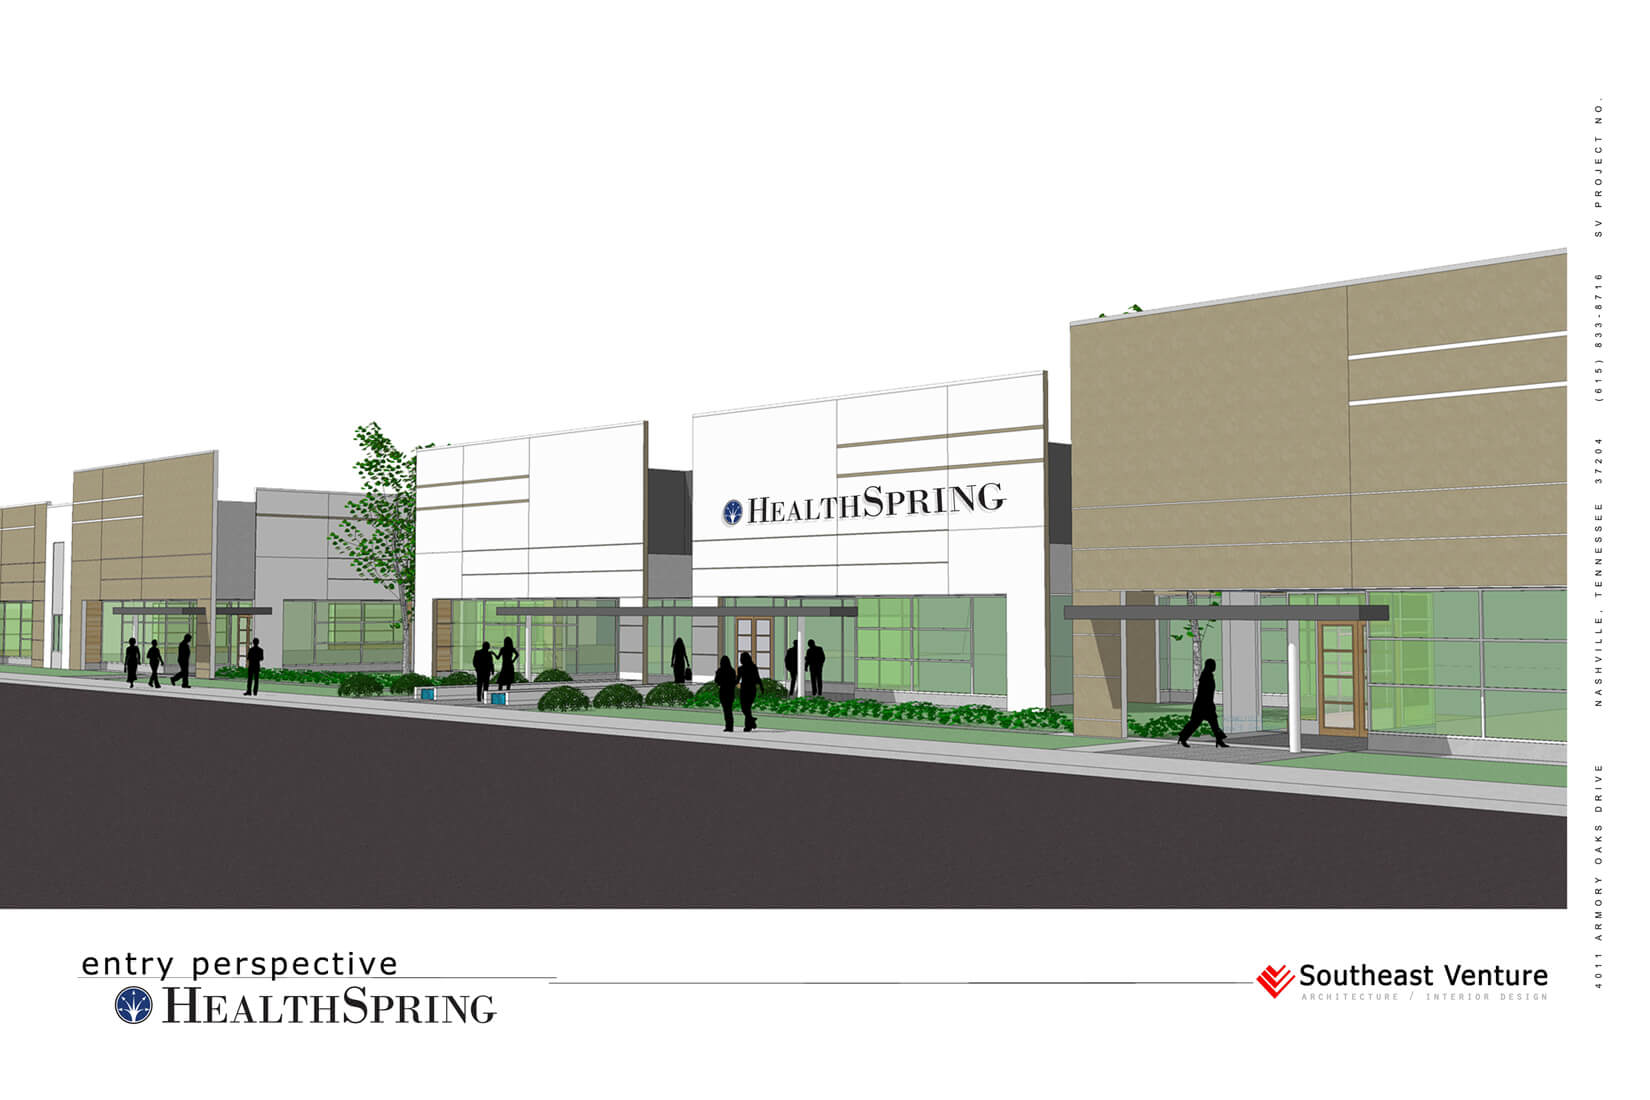 HealthSpring Rendering, Building Entry